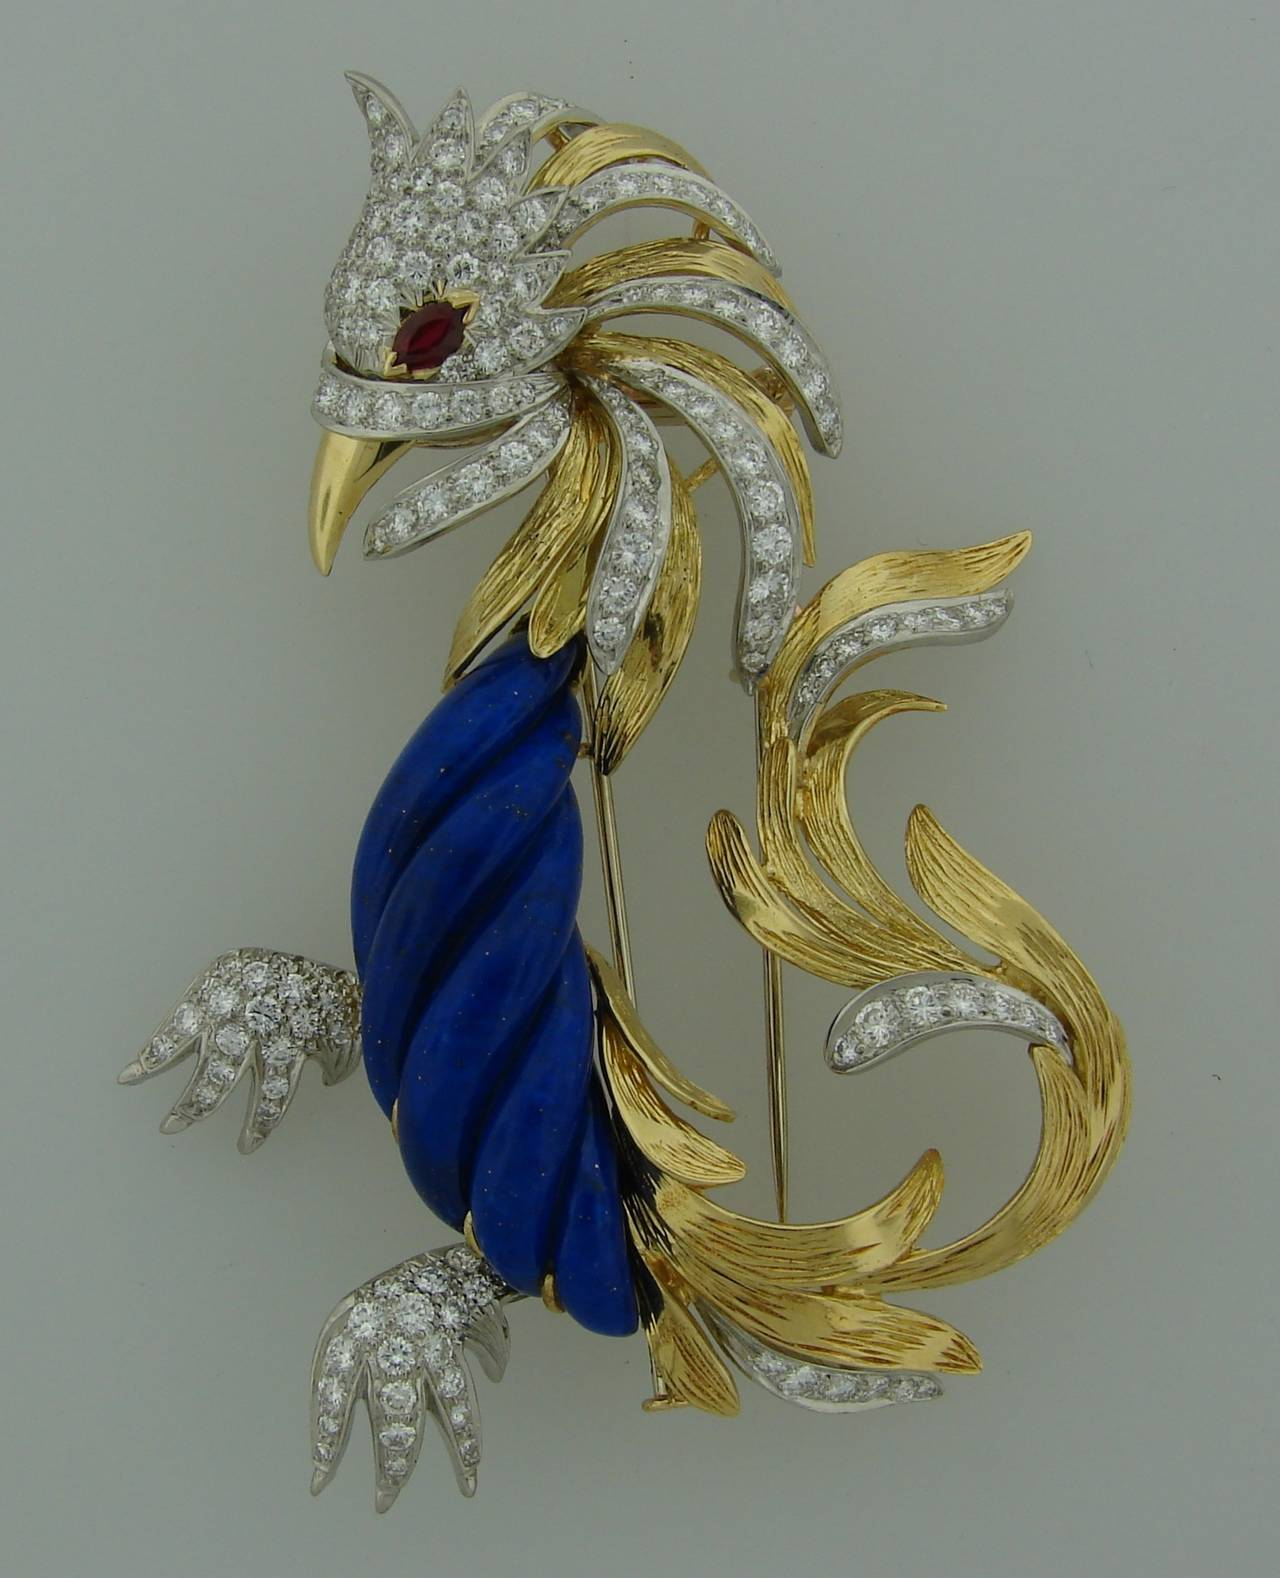 Fabulous pin created by a French high-end jewelry house Marchak. All pieces are handmade and exquisite. Small series made. Marchak's jewelry is highly collectible, especially older pieces that they don't make any longer.  This chic stylized